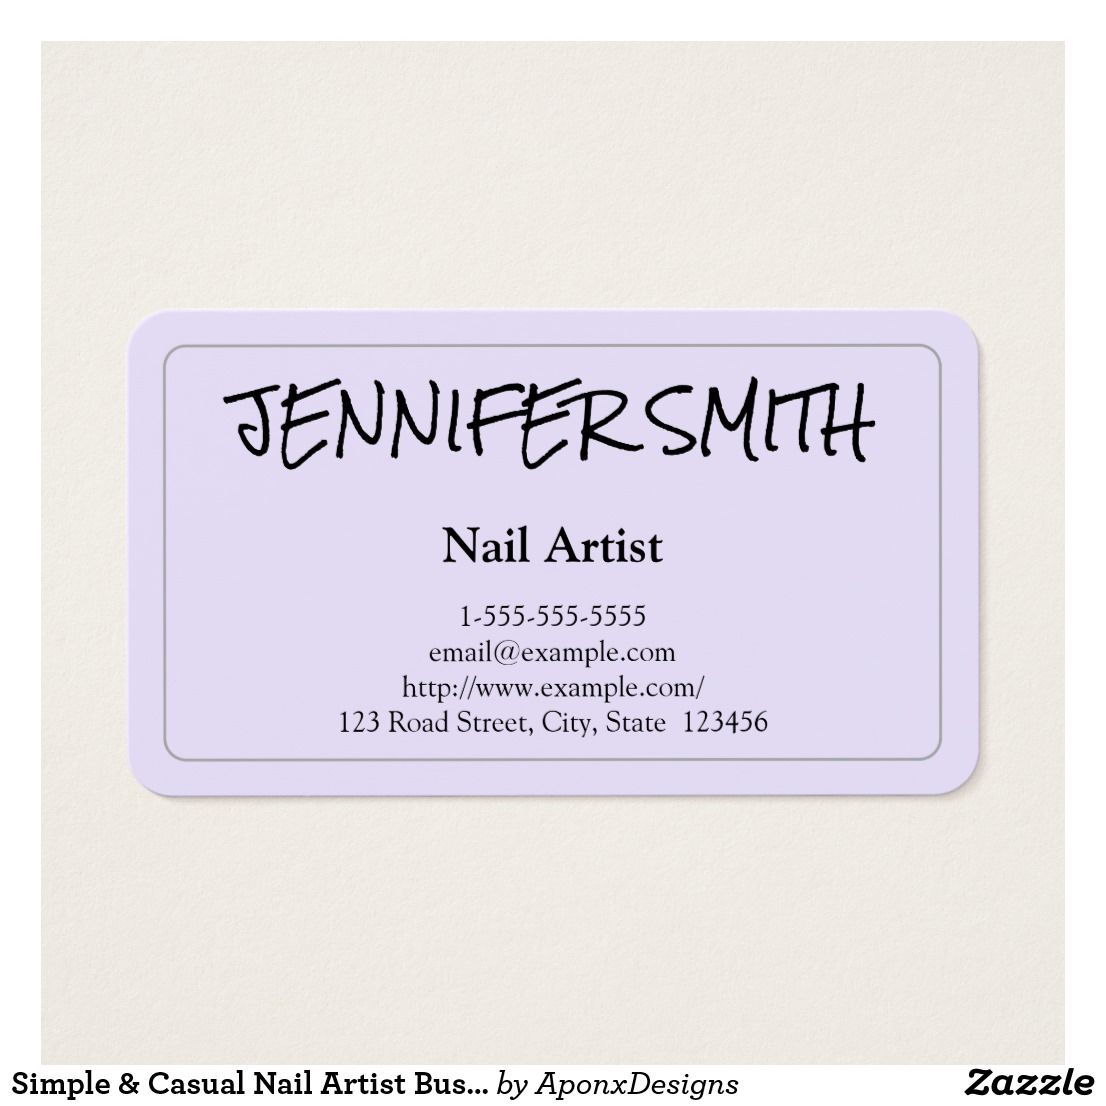 Simple & Casual Nail Artist Business Card